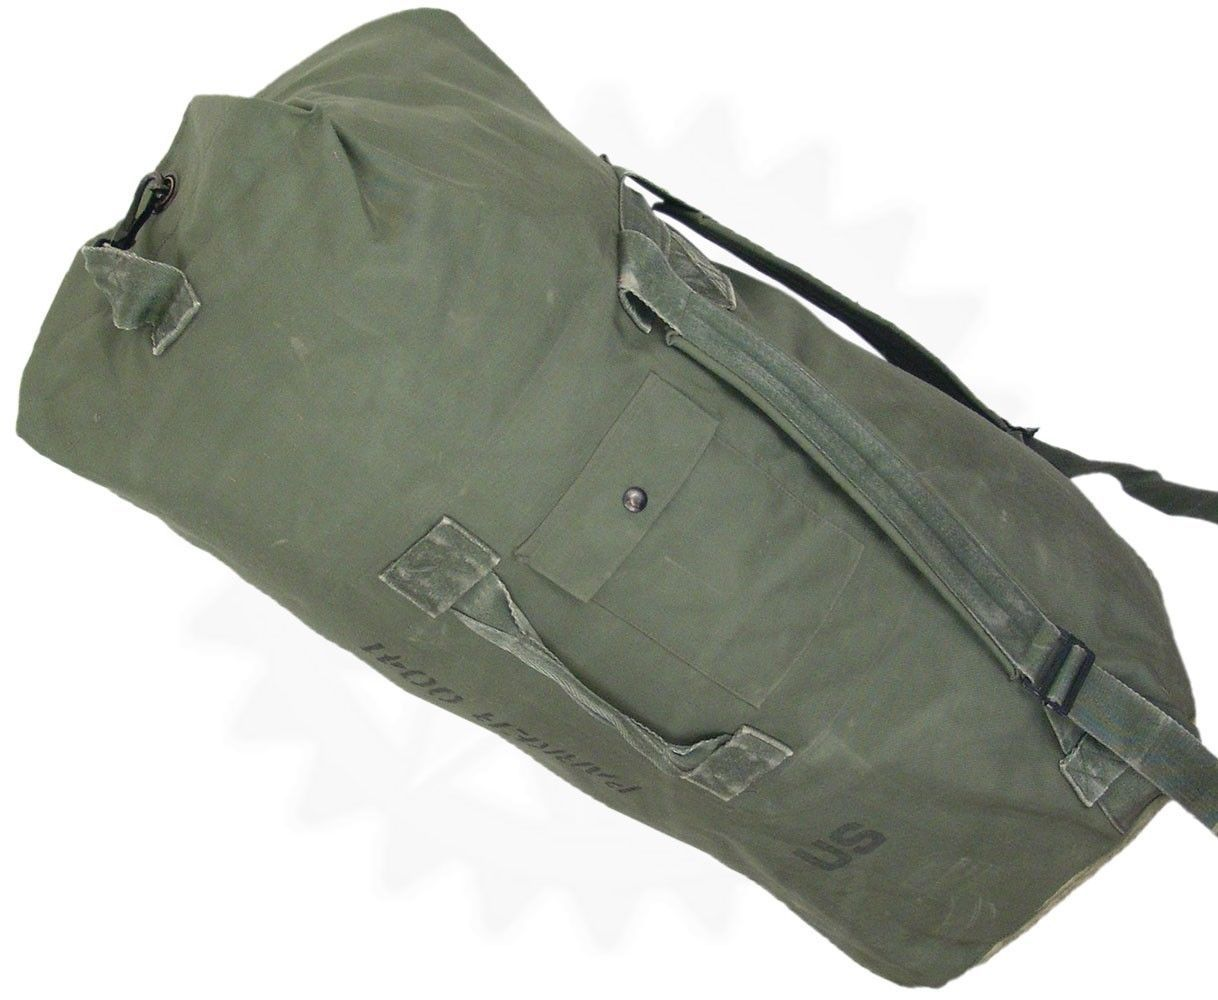 15  Military Duffle Bags - Very Good Condition - Heavy Duty - Army Issue Duffel